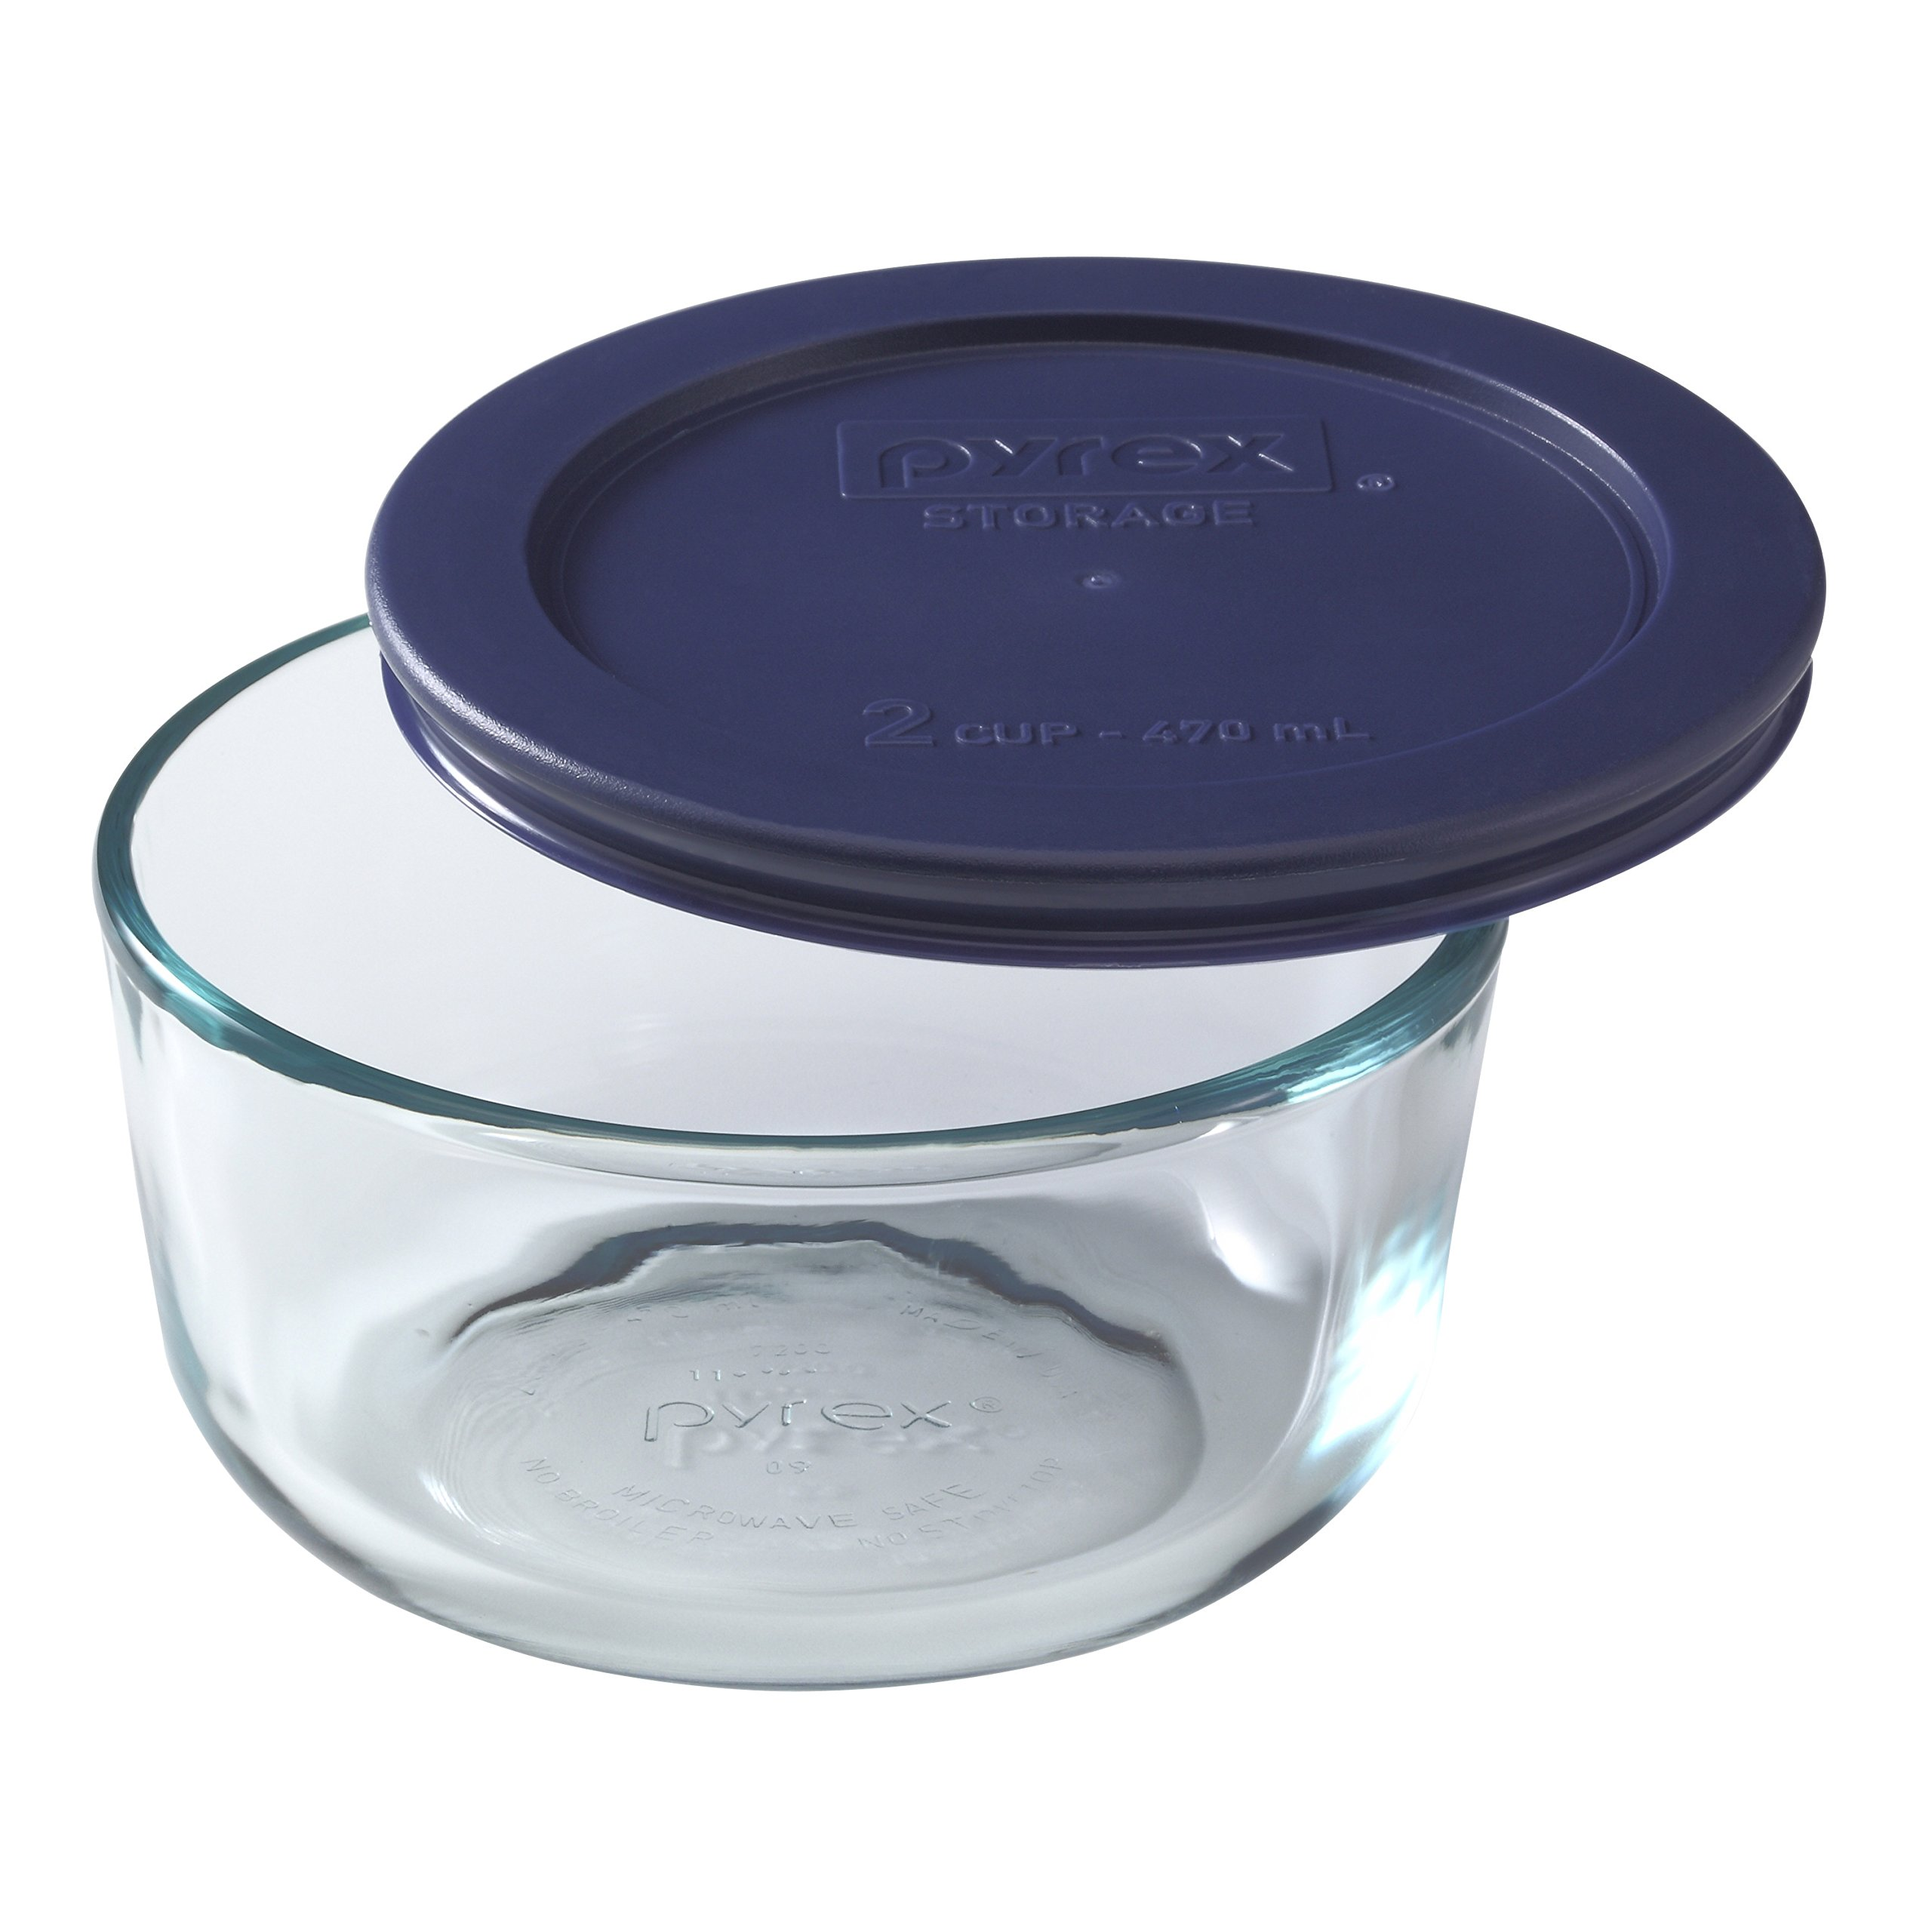 Pyrex Simply Store Glass Food Container Set with Blue Lids (10-Piece) by Pyrex (Image #2)